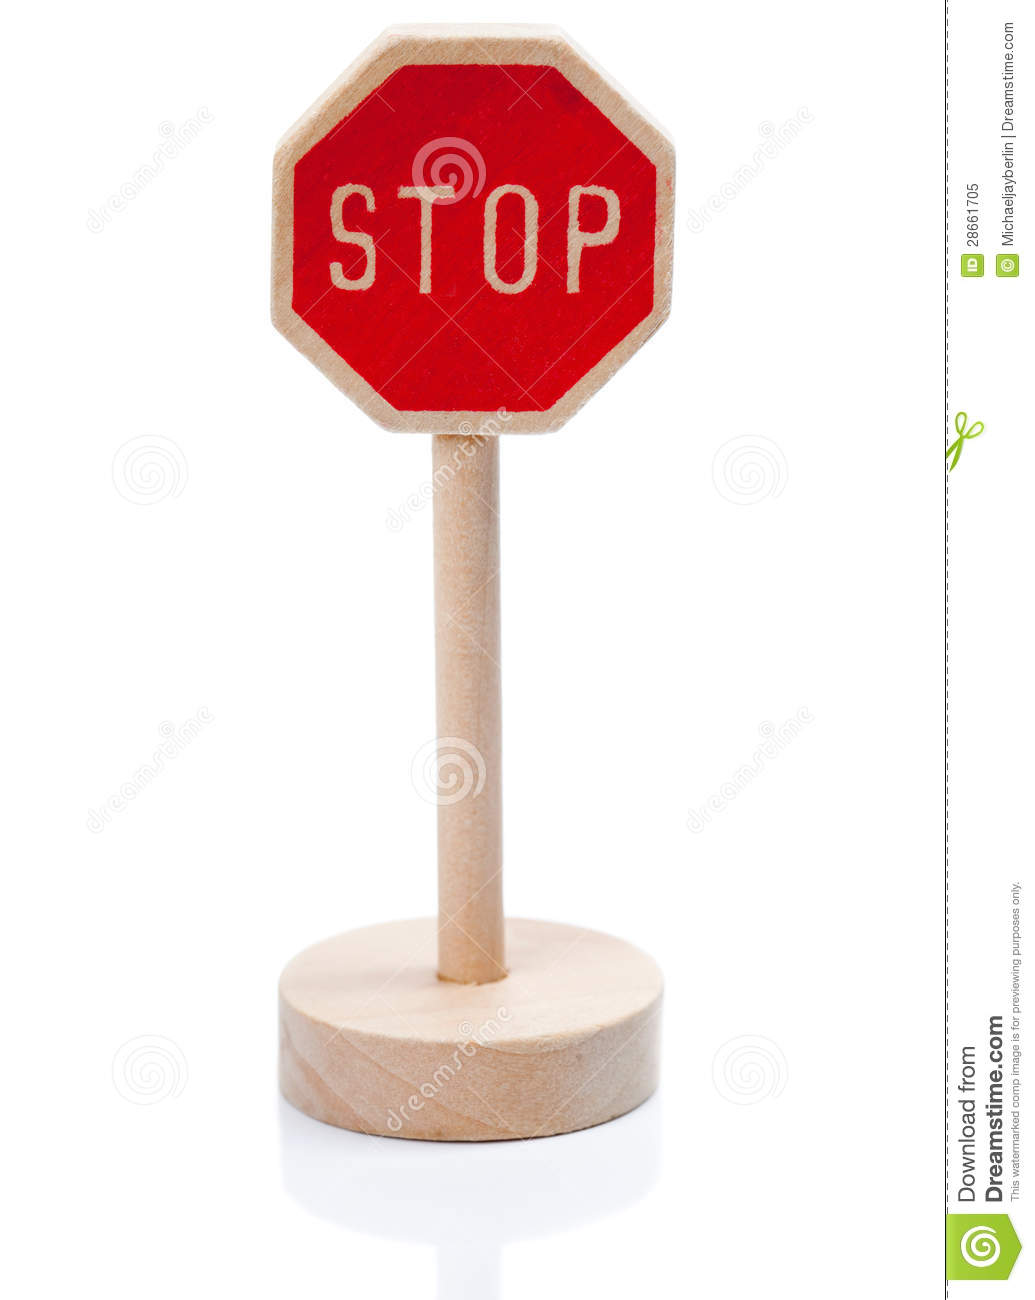 Wooden toy stop sign (Stopschild)